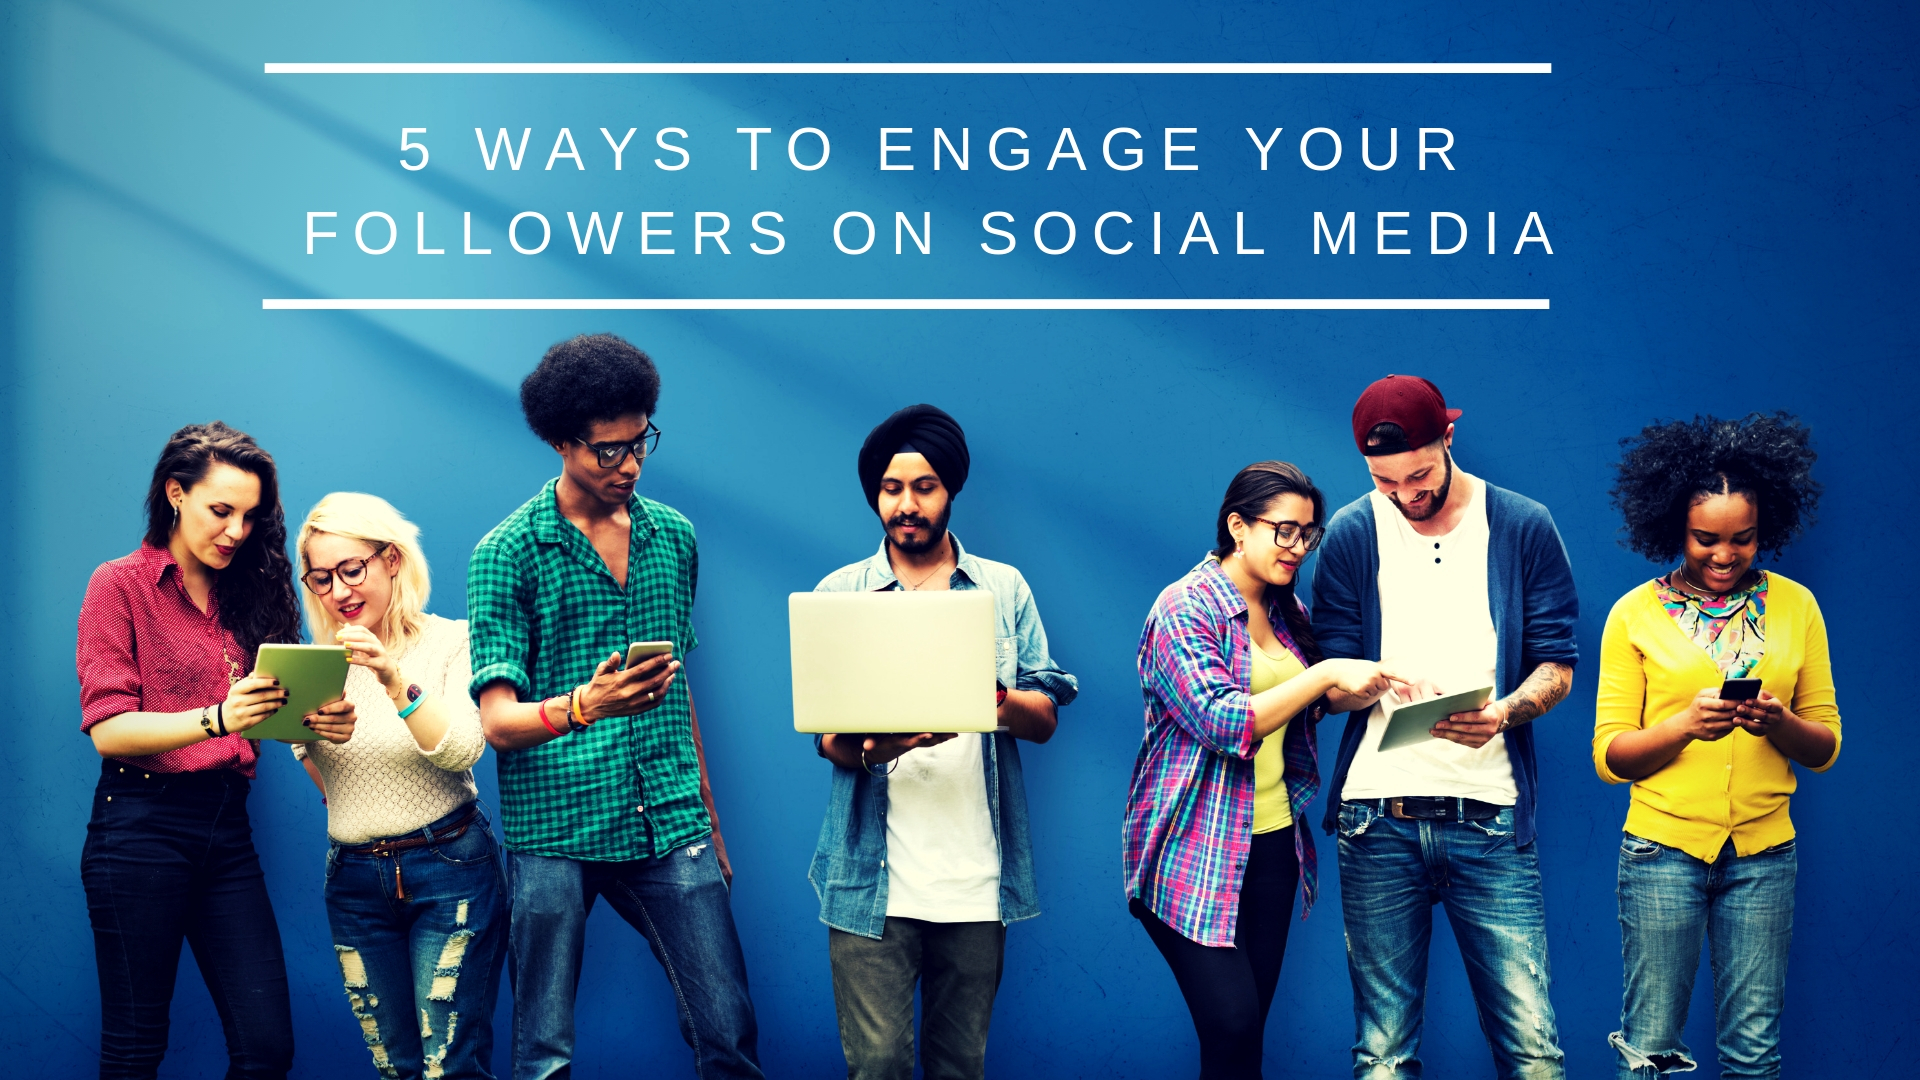 5 Ways to Engage Your Followers